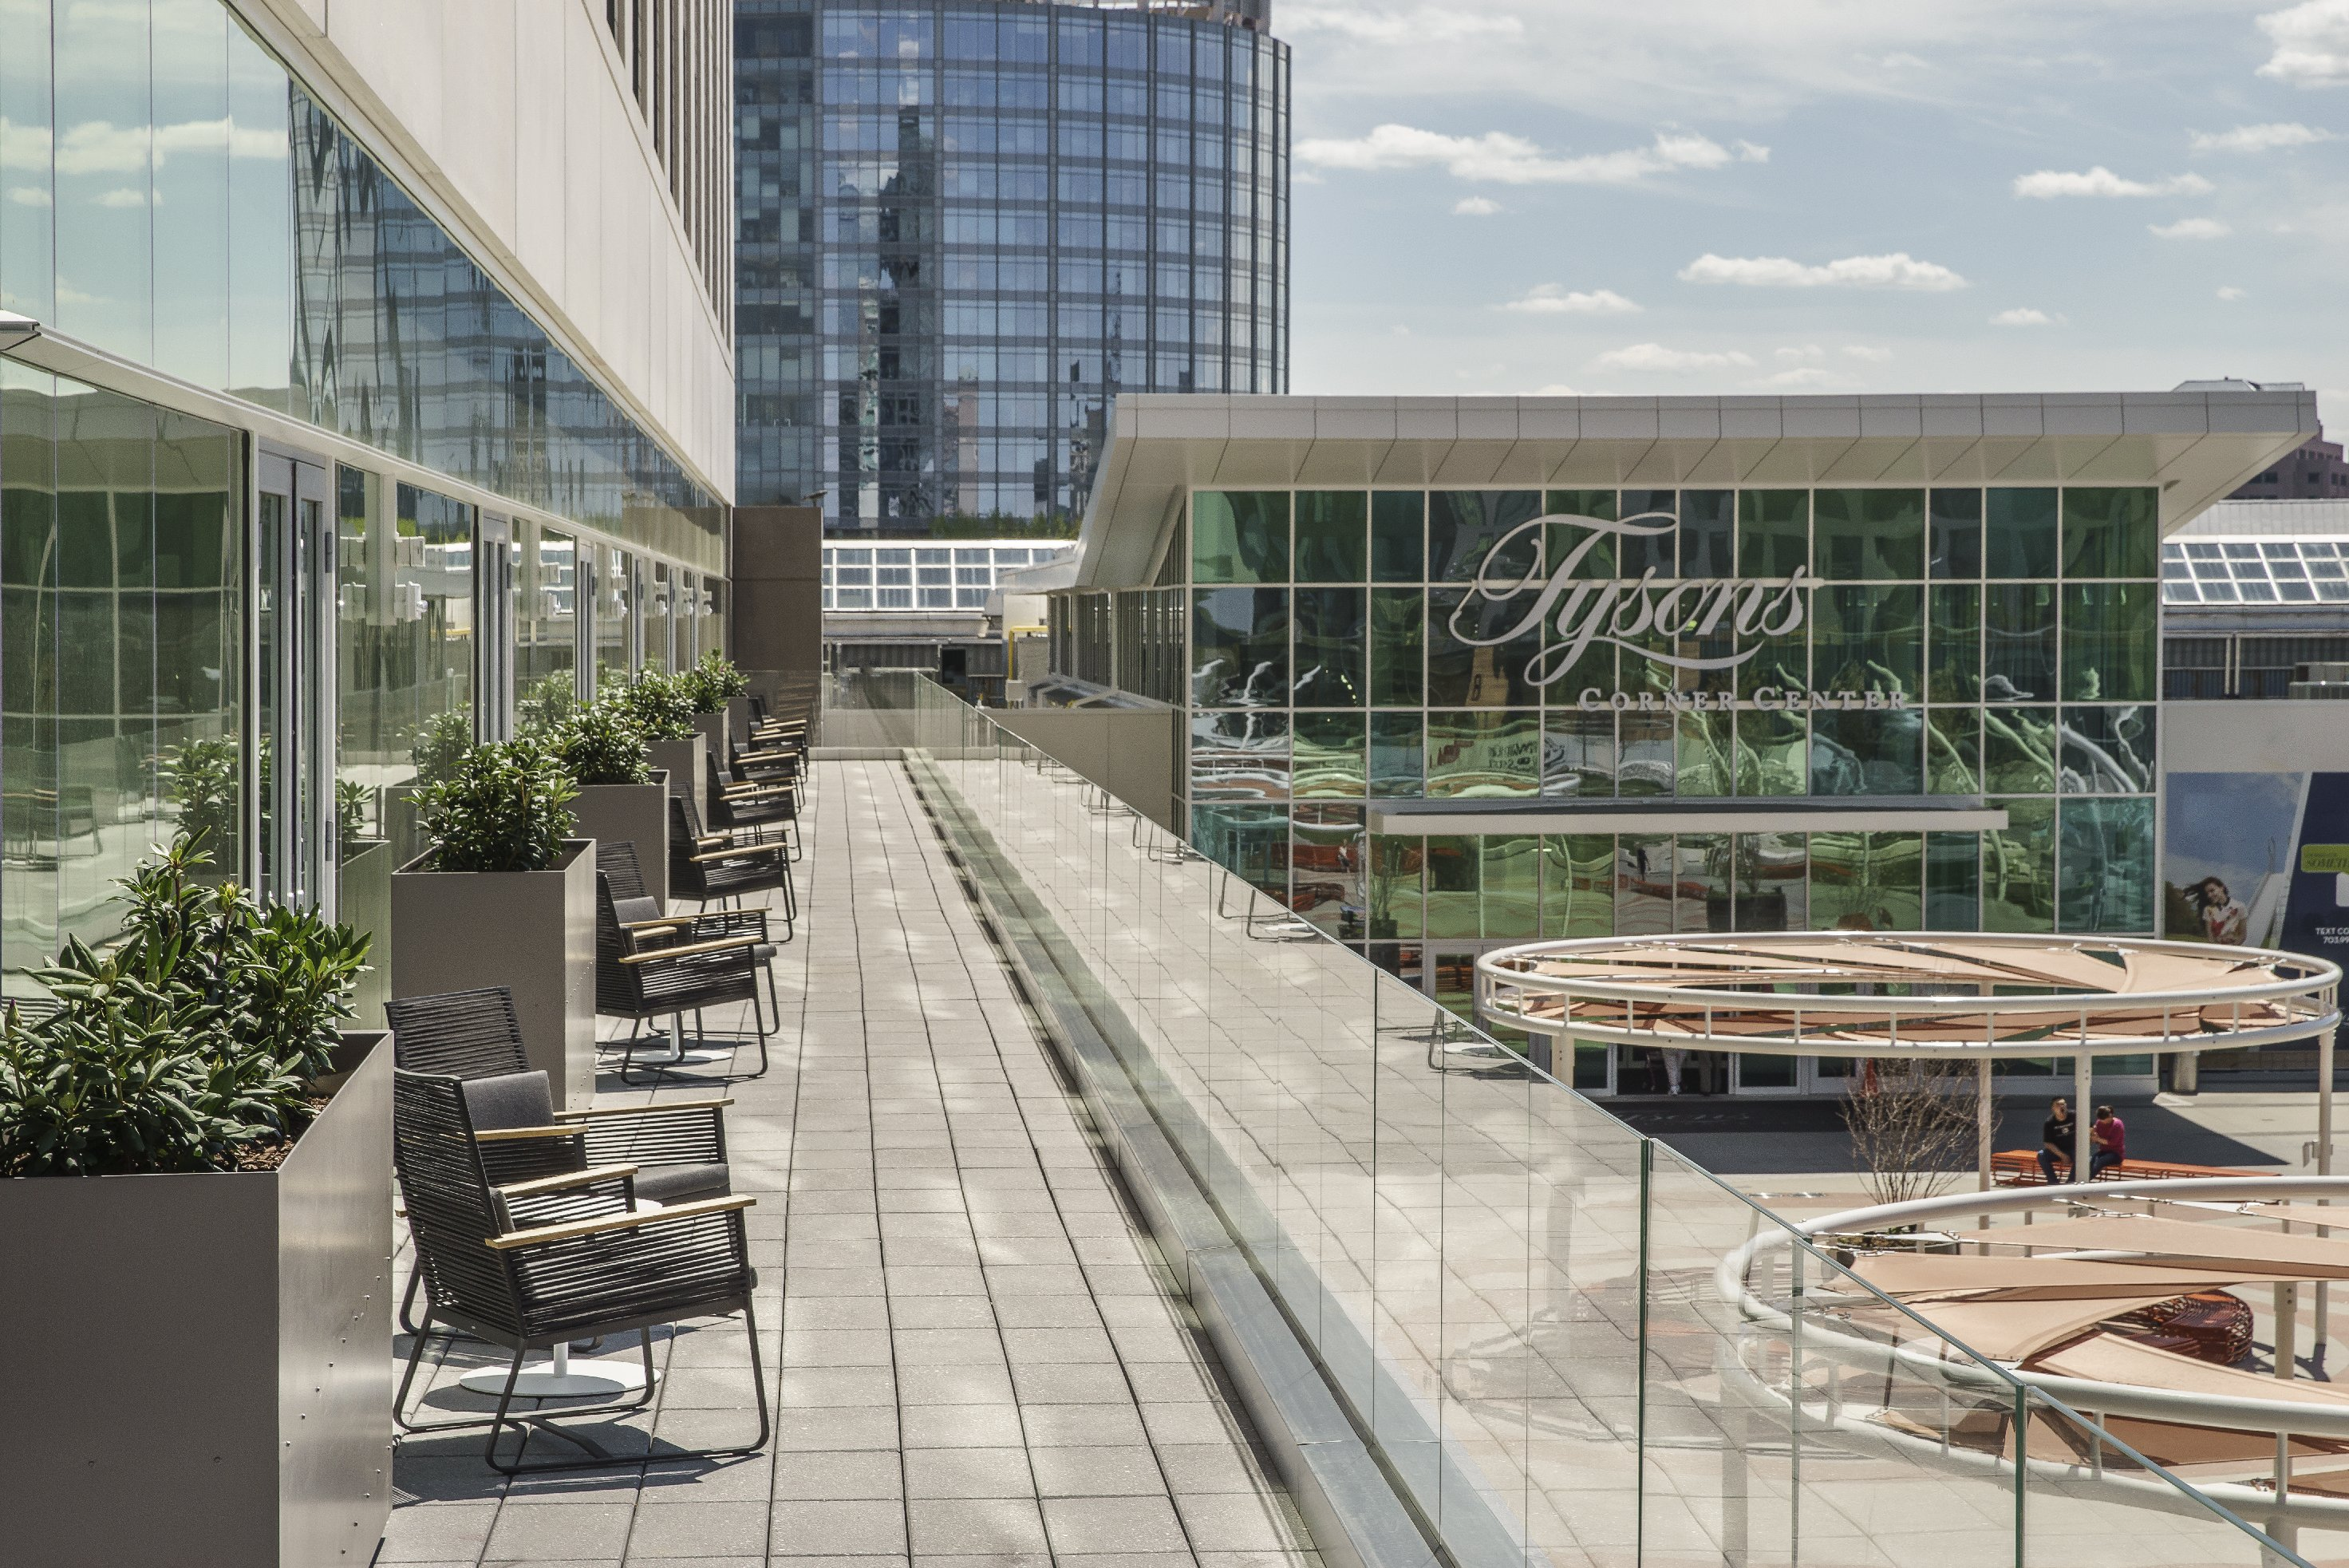 Picture of the patio the Hyatt balcony overlooking the Tysons Corner Center Plaza